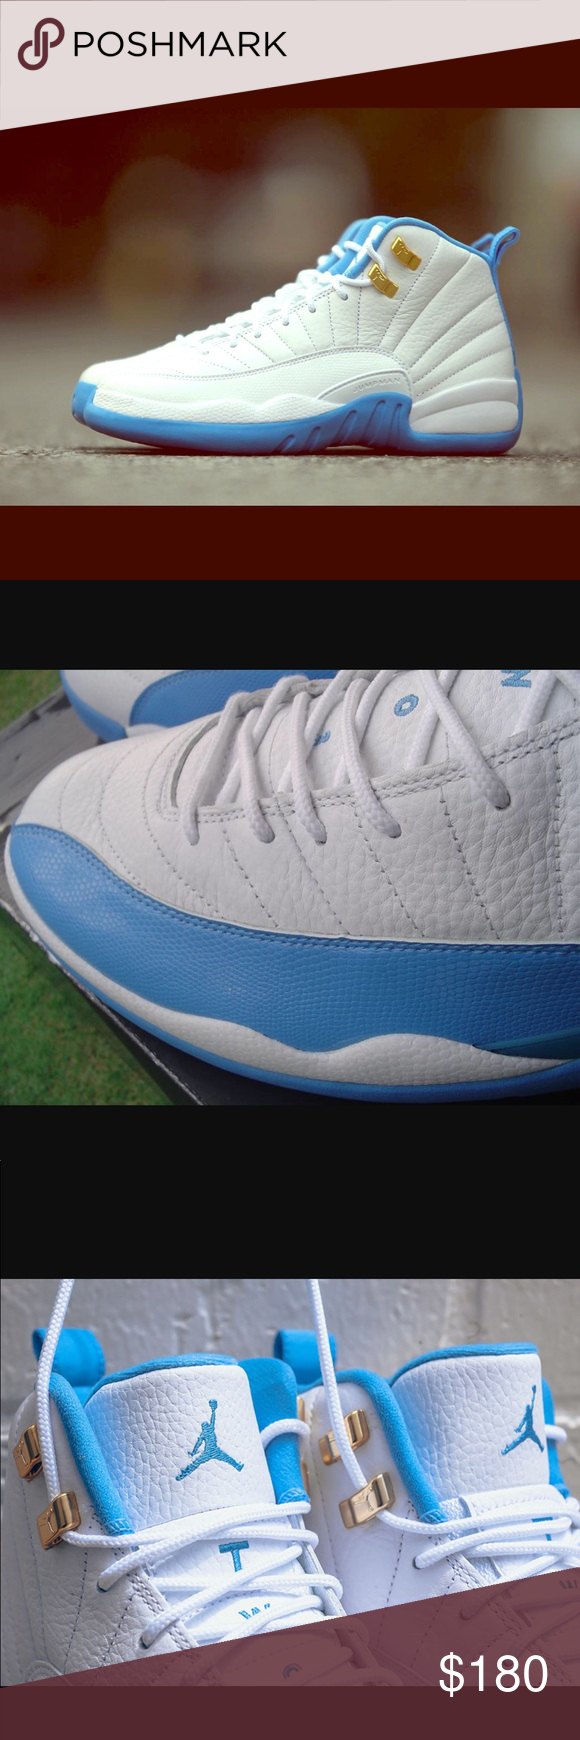 sports shoes b17a5 7866c Rare baby blue and white Retro 12 Jordans Baby blue ...